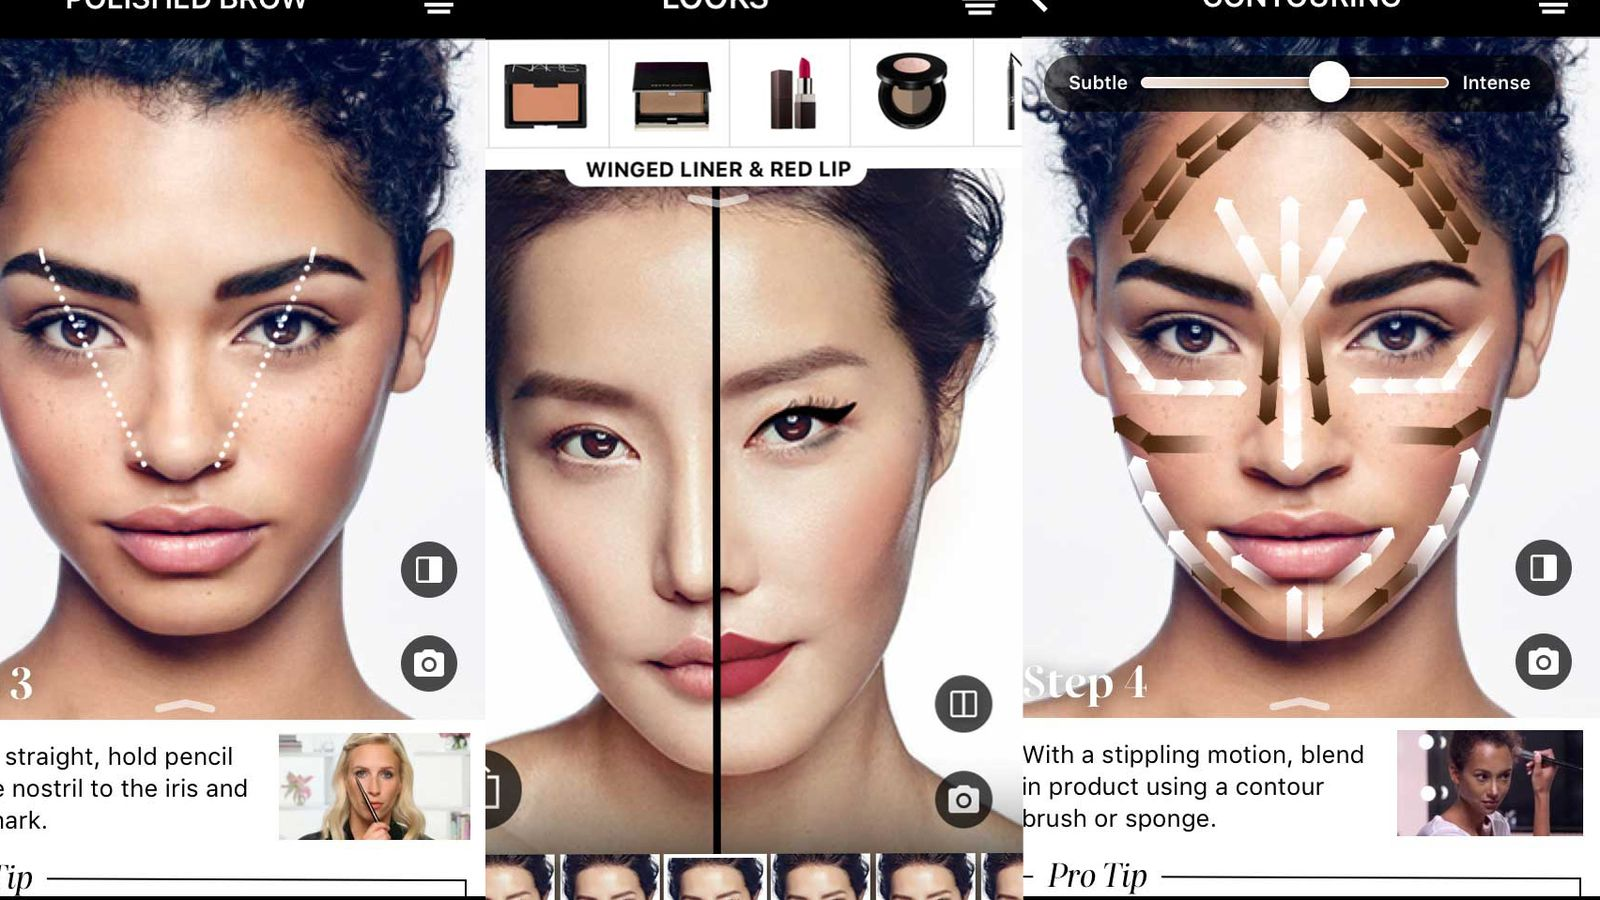 sephora u2019s latest app update lets you try virtual makeup on